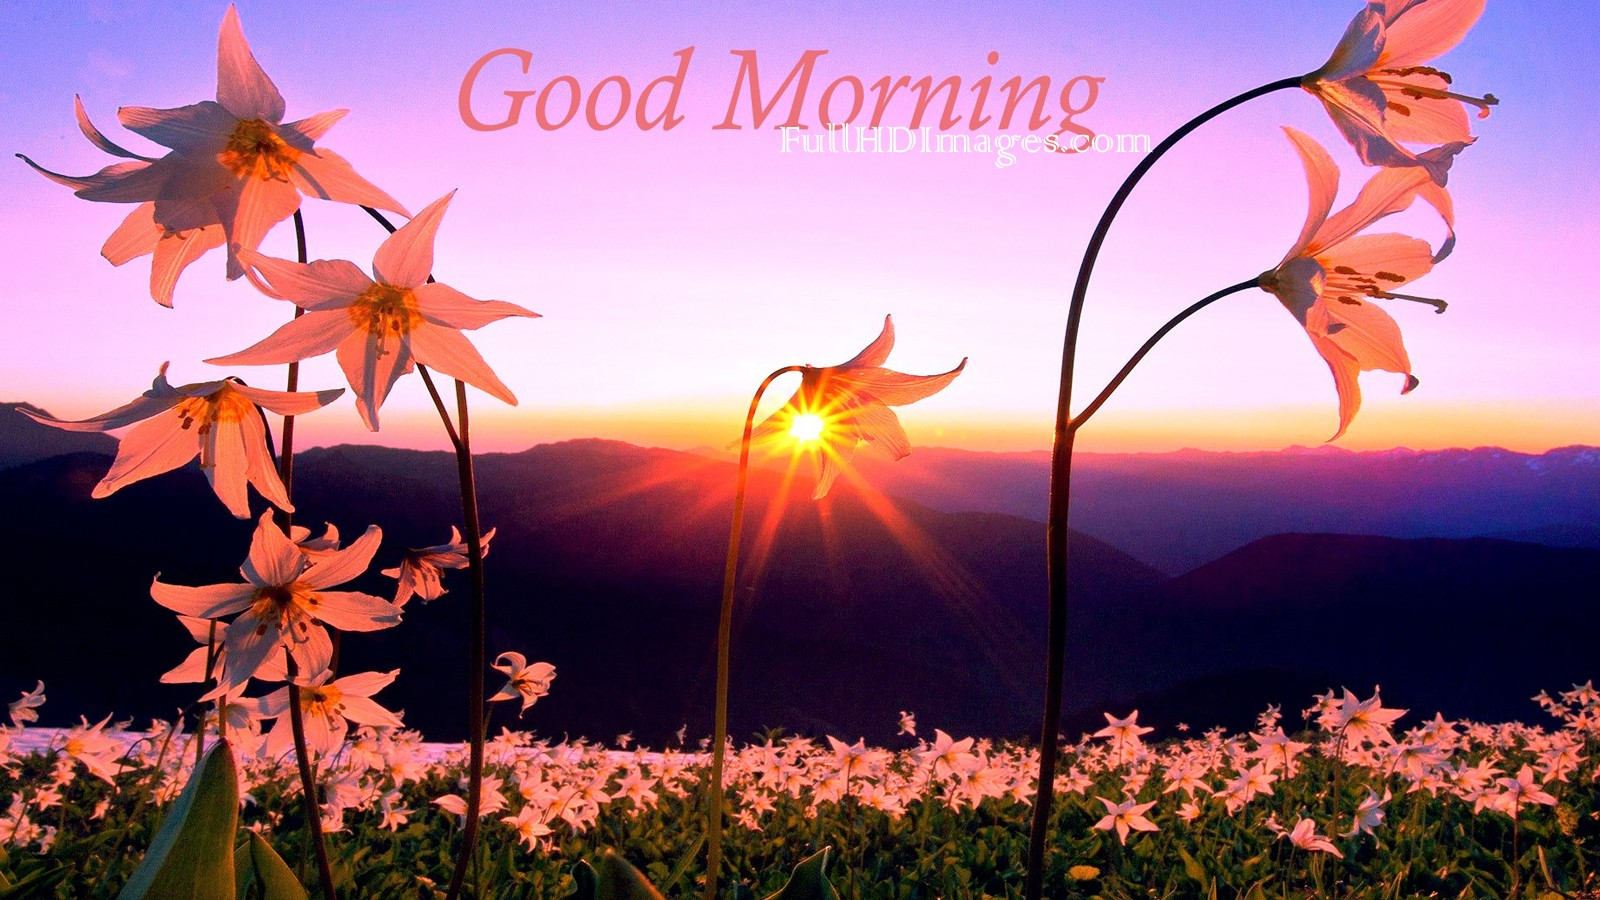 Good morning love flower images good morning flower images for good morning flower for girlfriend beautiful morning flowers good morning flower images for facebook good morning flower images free download izmirmasajfo